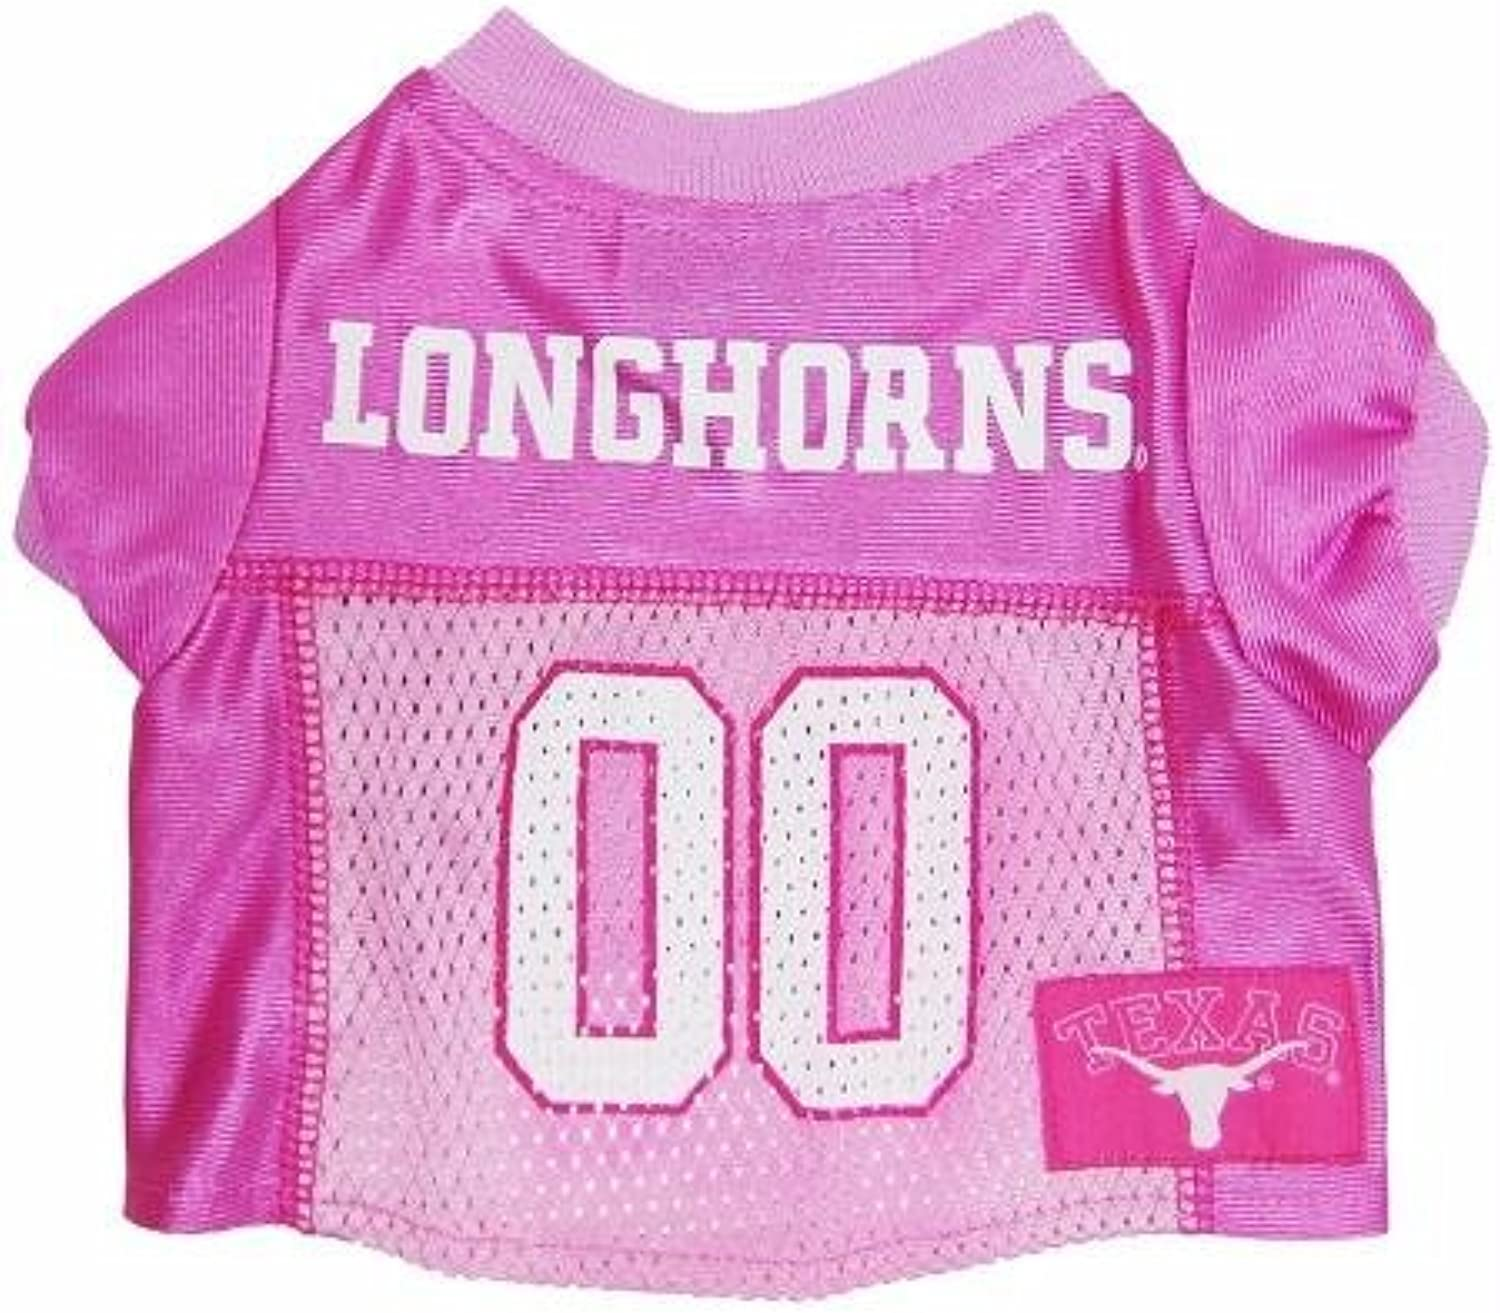 Mirage Pet Products Texas Longhorns Jersey for Dogs and Cats, Small, Pink